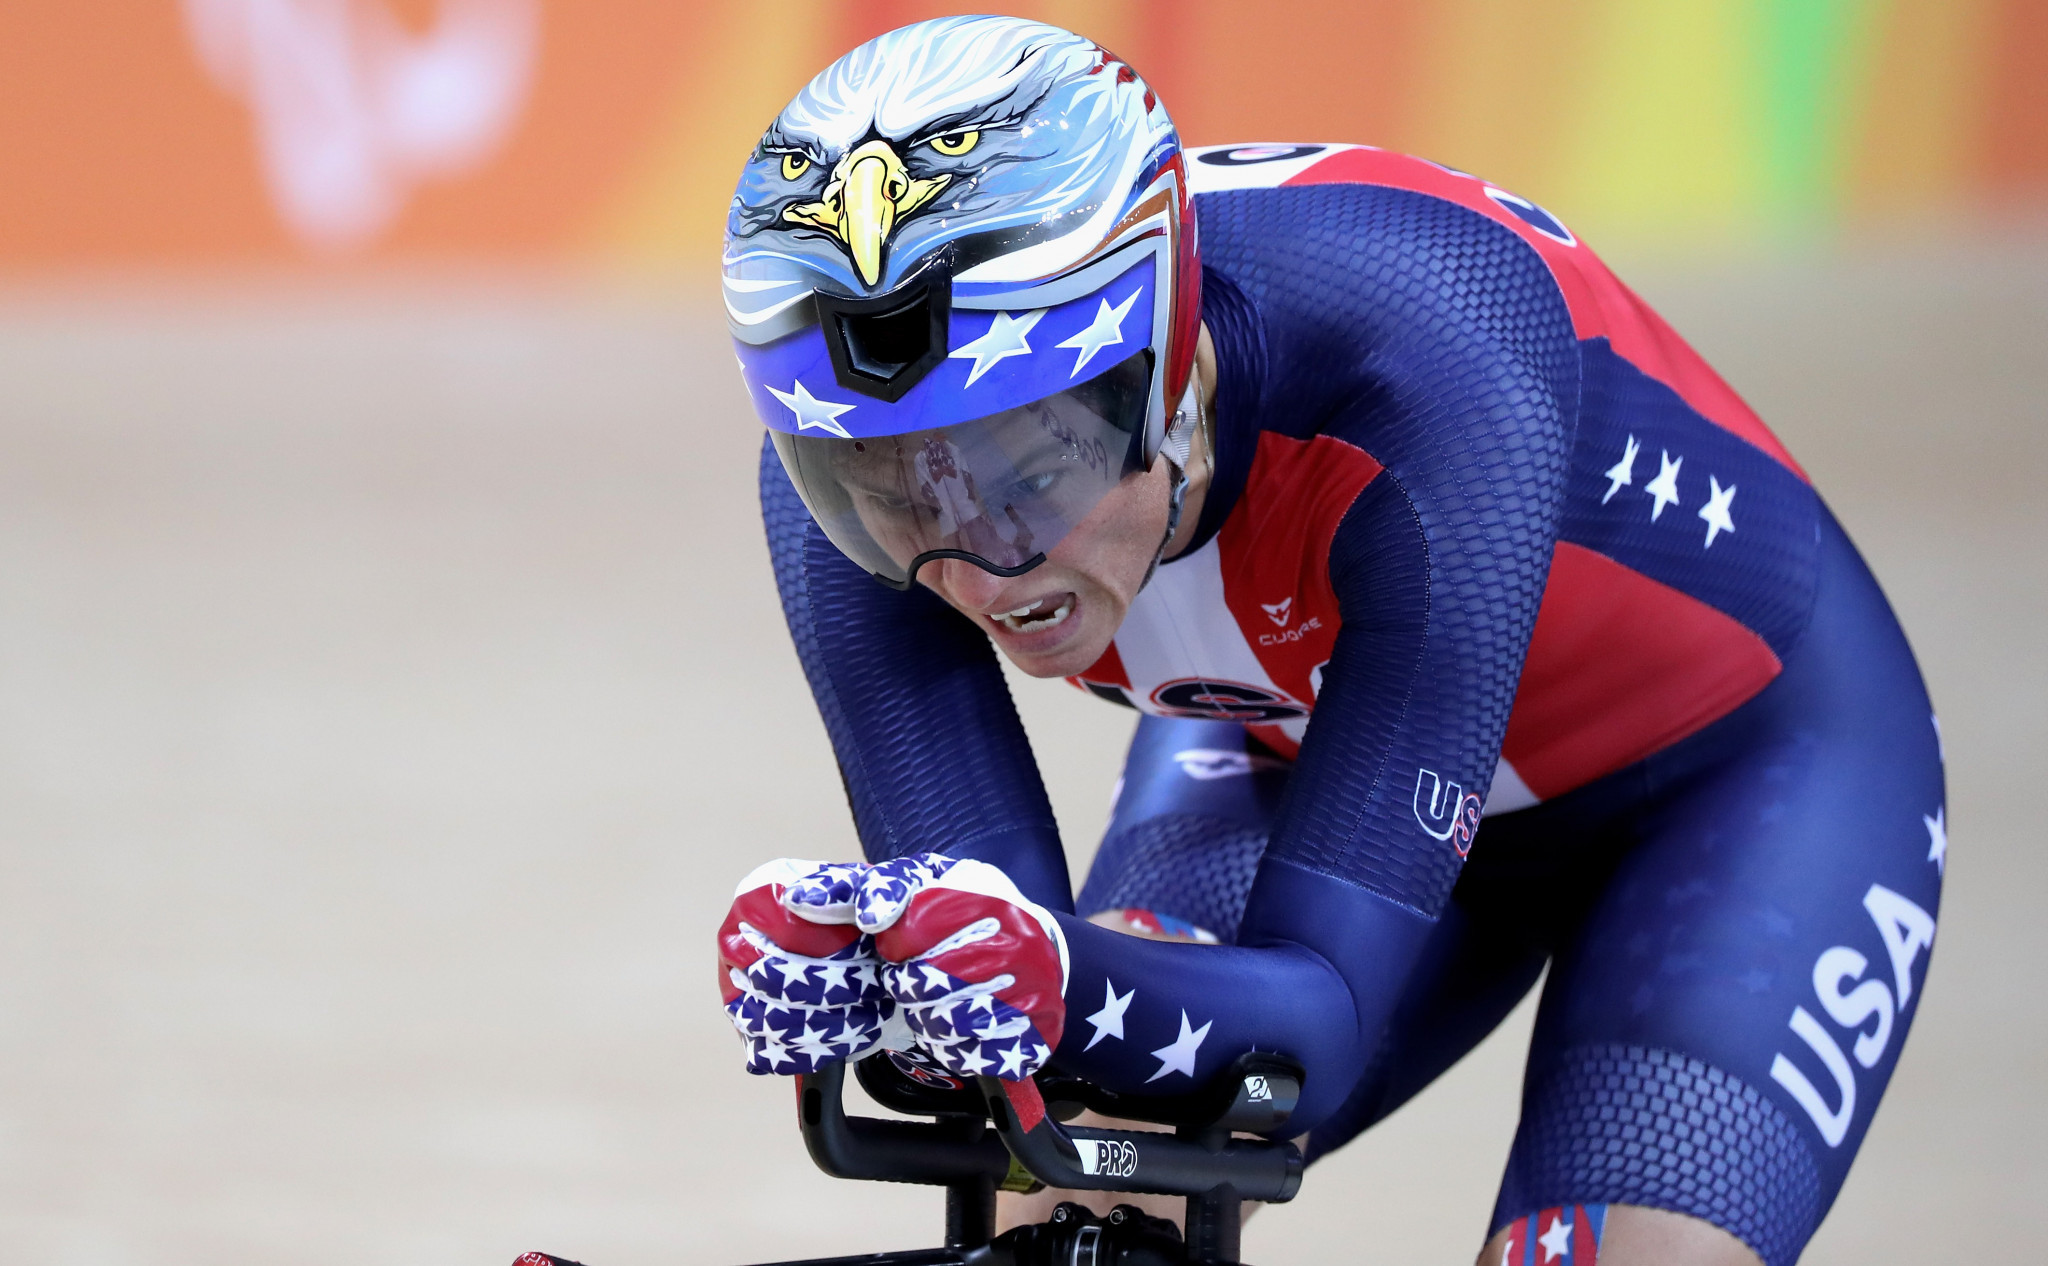 Shawn Morelli headlines the United States Paralympic Cycling team for 2020 ©Getty Images